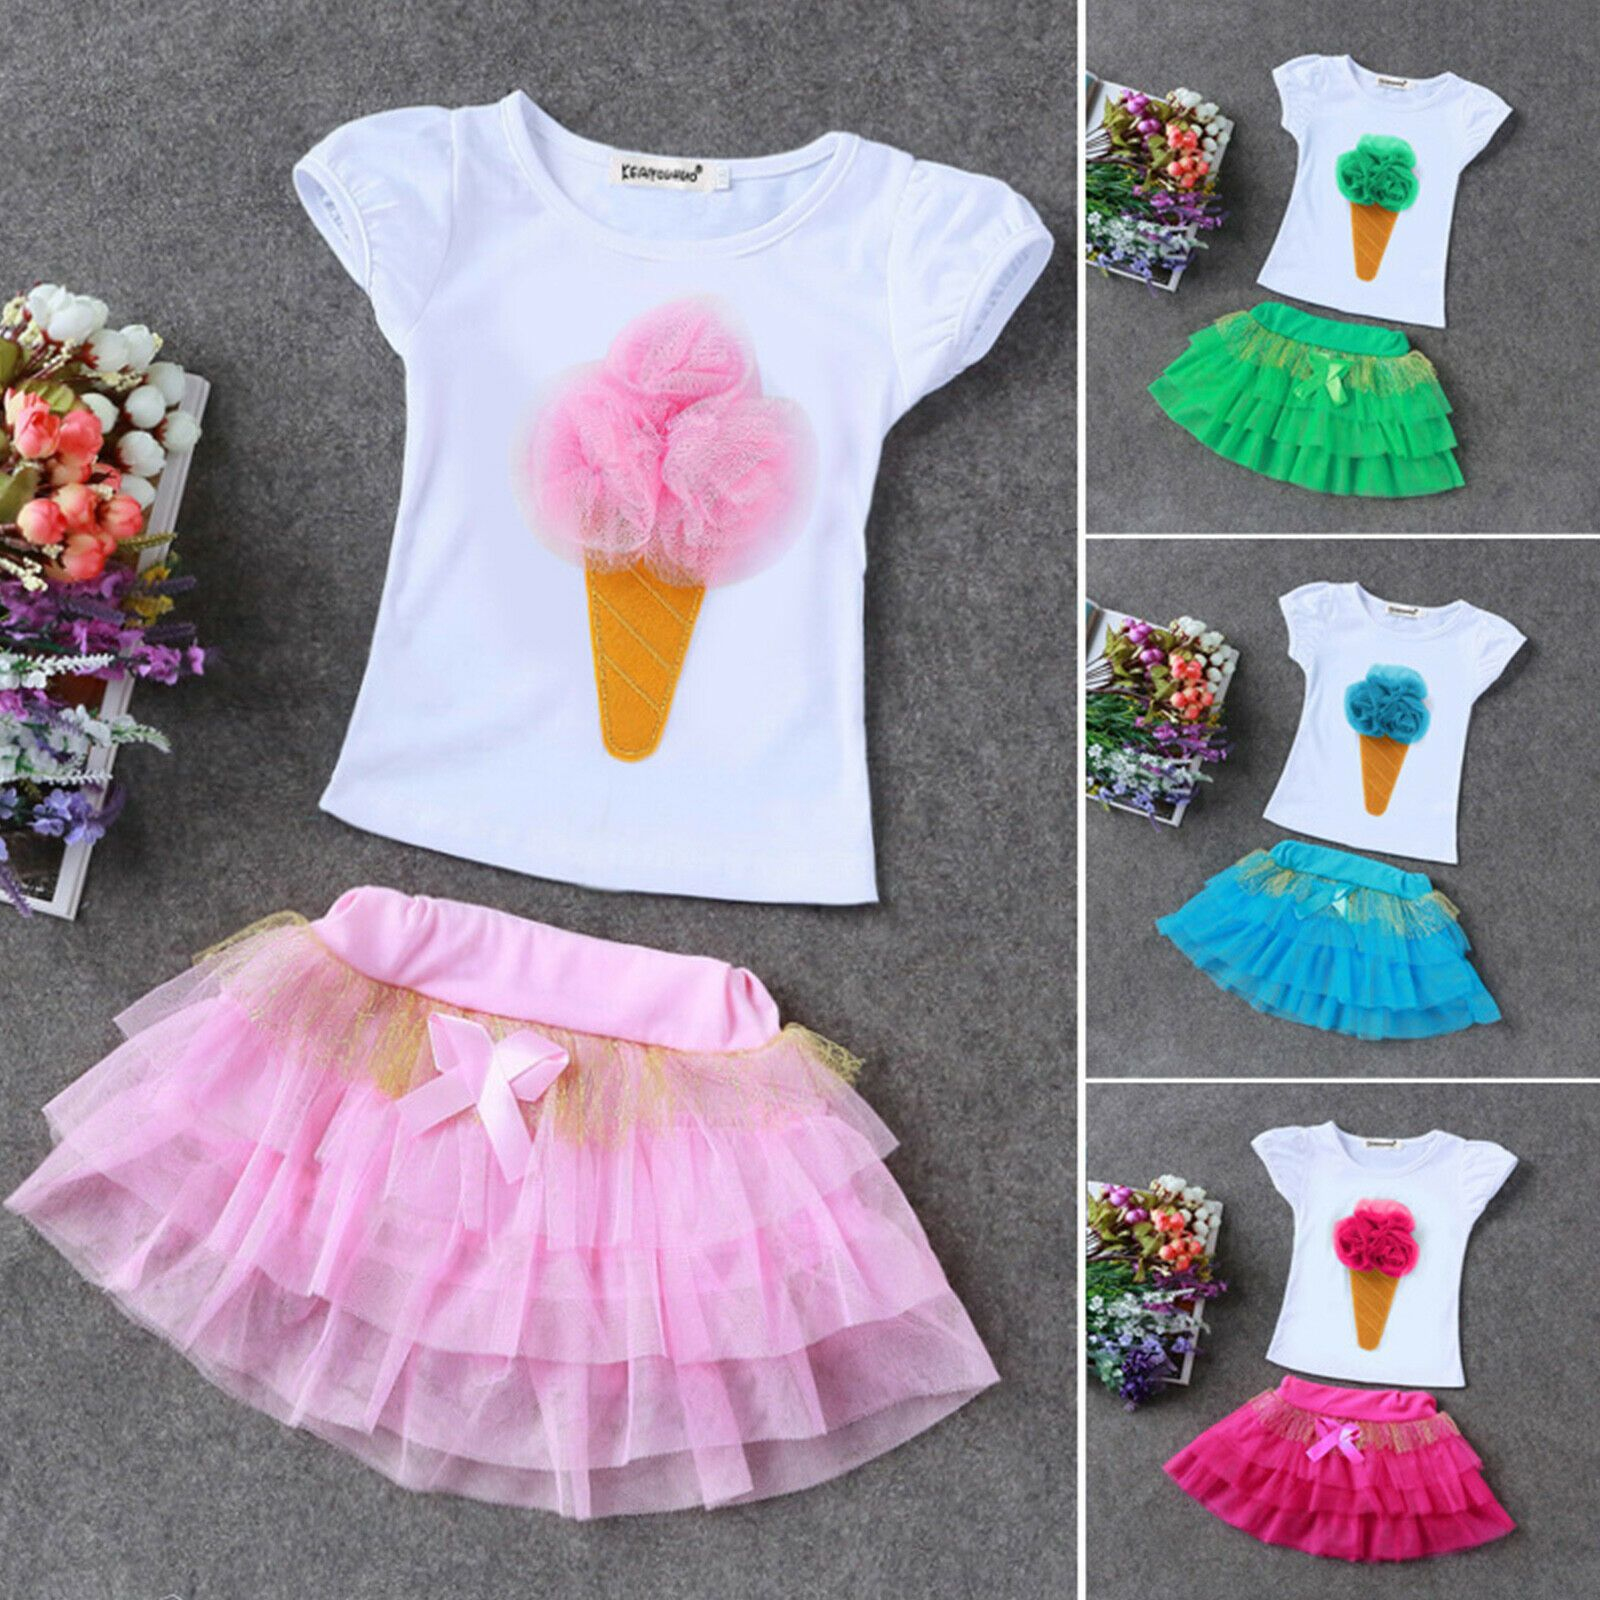 Fashion Kids Baby Girls Rainbow Vest Tops Tulle Skirt Tutu Dress Outfits Clothes